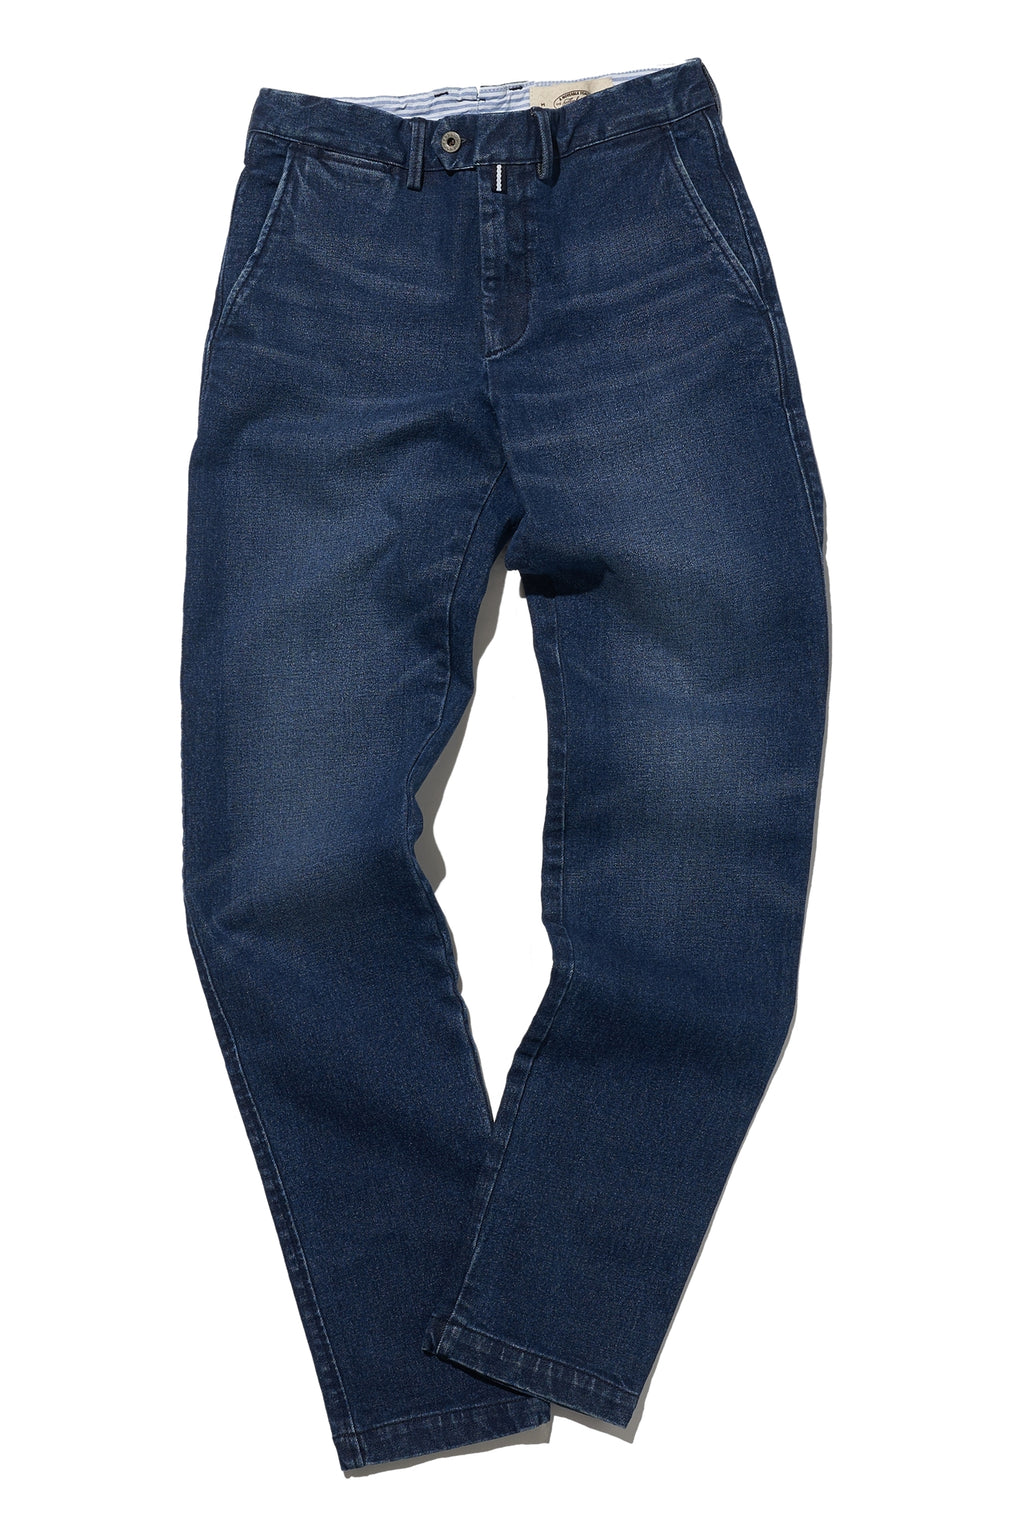 19 FW DENIM 002 (CHINO TYPE)